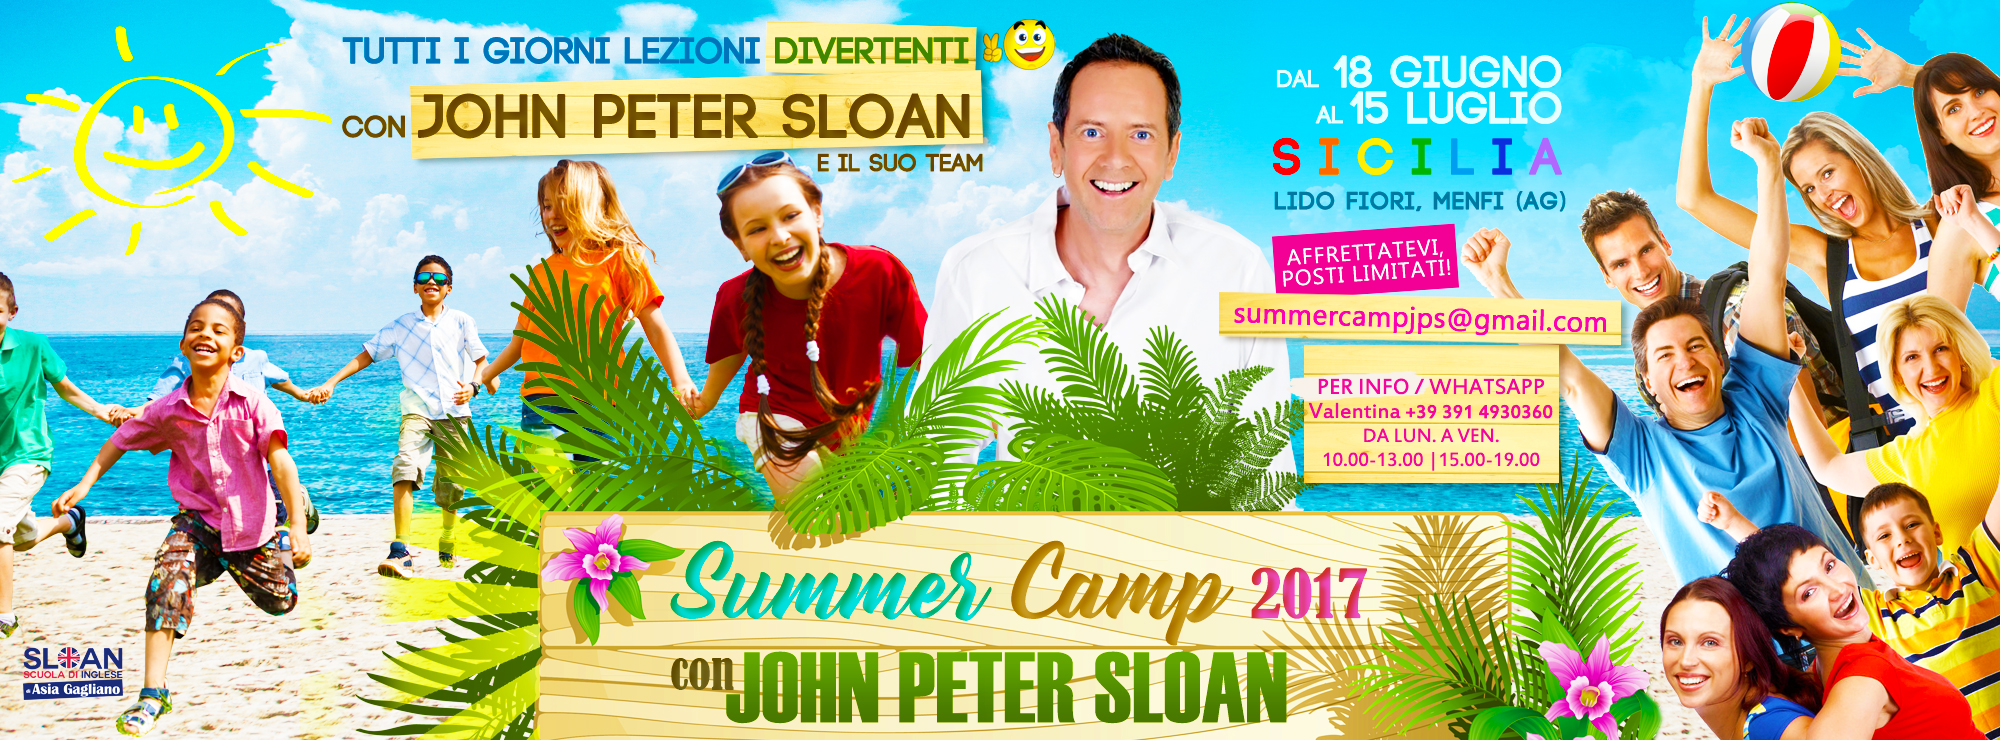 SUMMER CAMP - JOHN PETER SLOAN